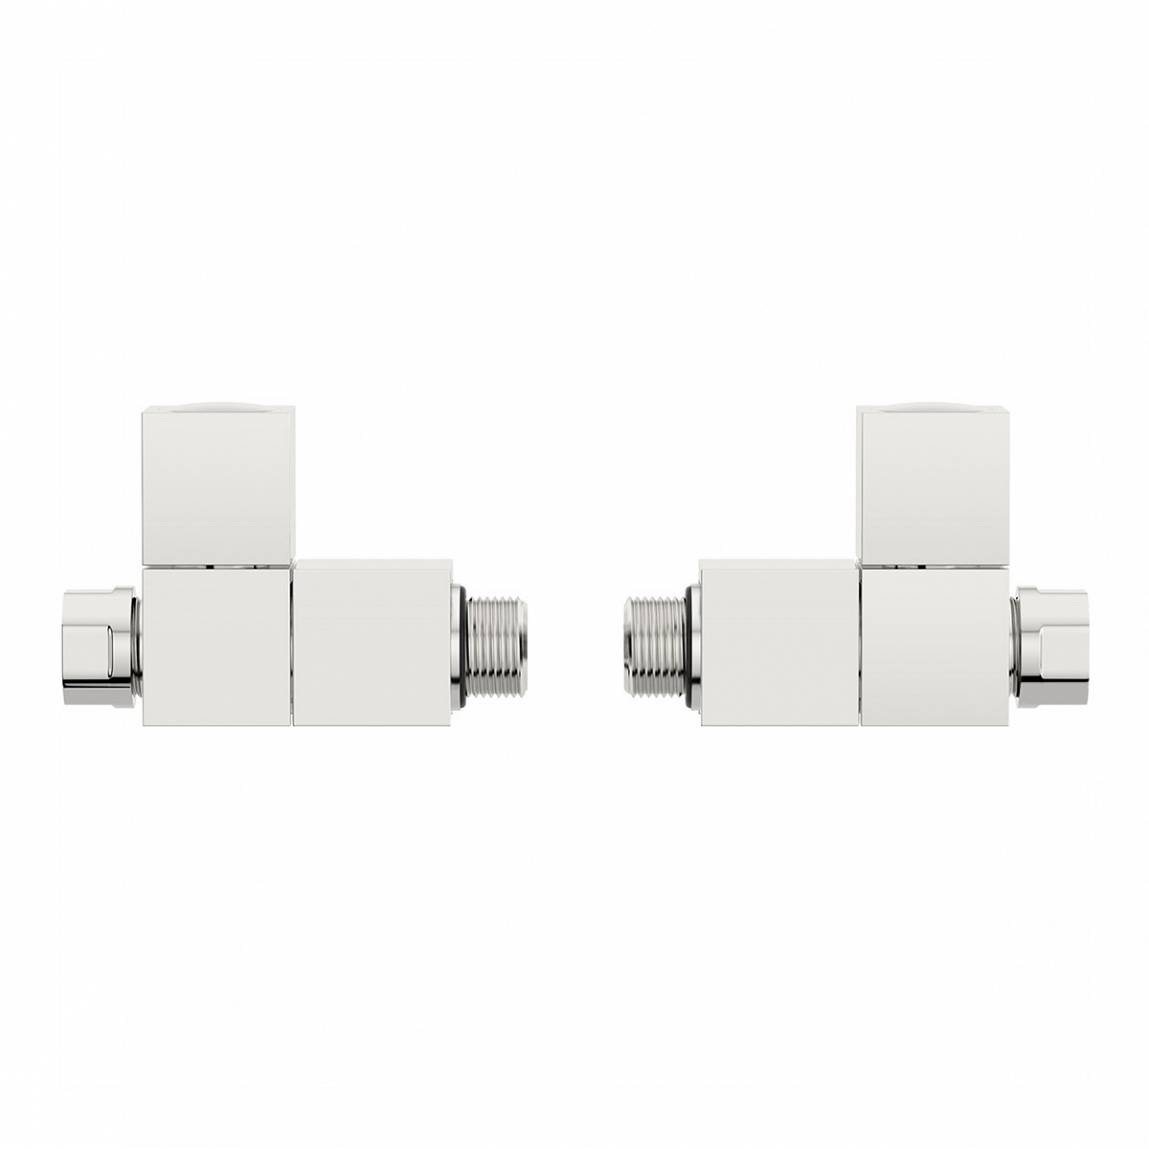 Image of Square Straight Radiator Valves